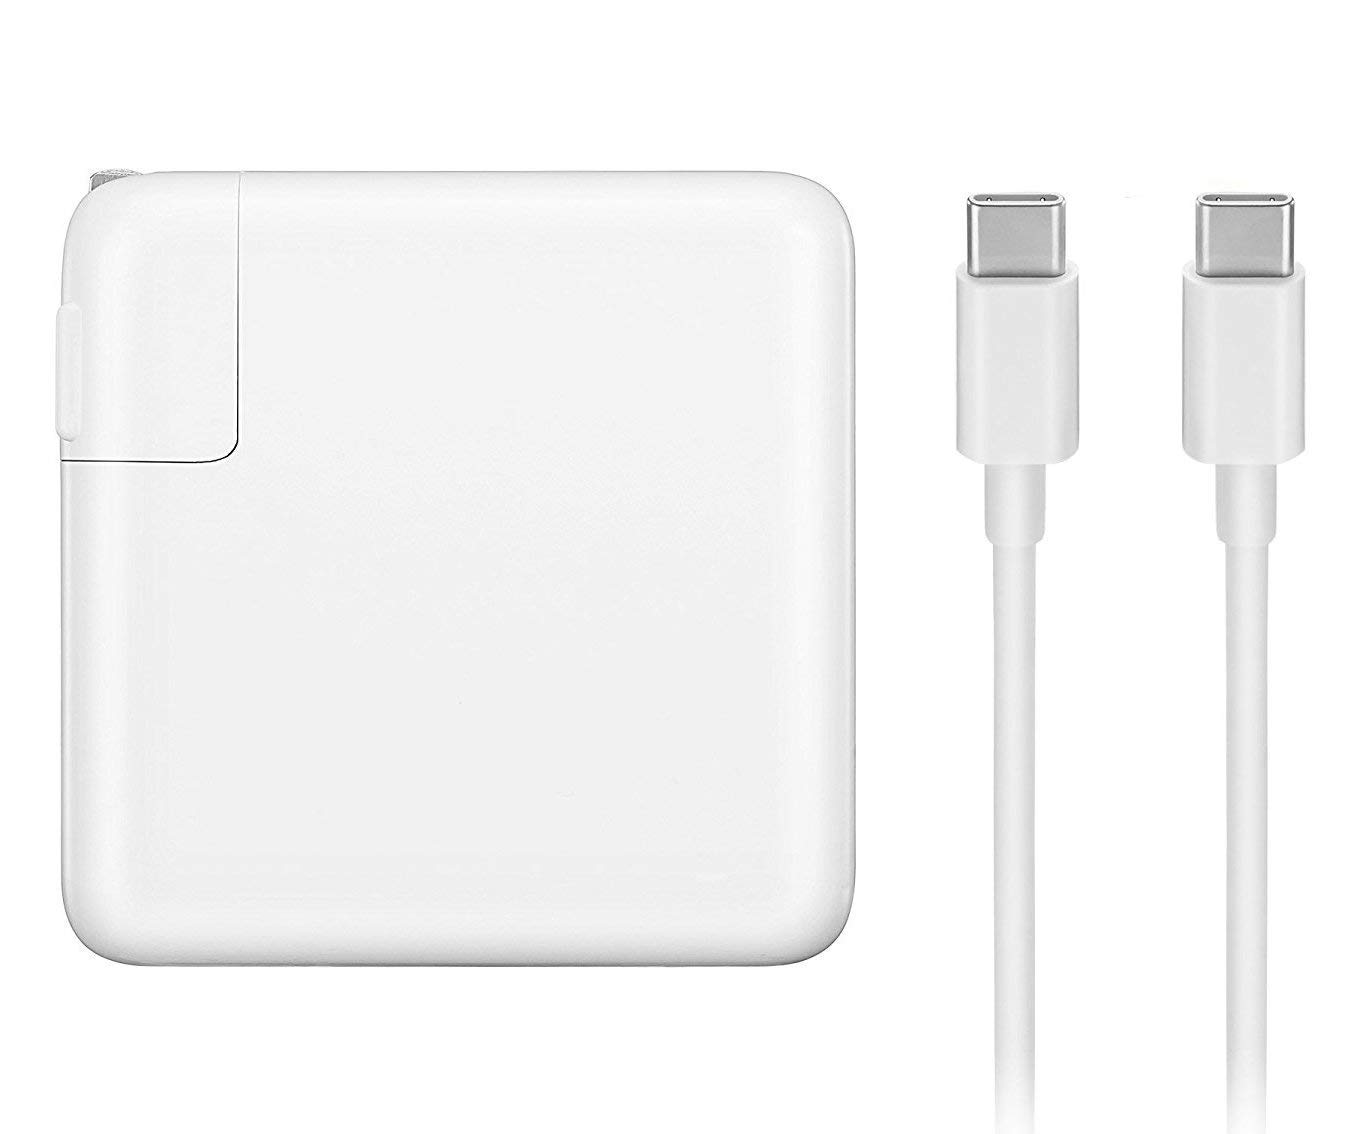 Mac Book Pro Charger, 87W USB-C To USB-C Ac Power Adapter Charger Replacement For MacBook Pro 13 Inch 15 Inch, MacBook Air 2018, With Type-C Charge Cable